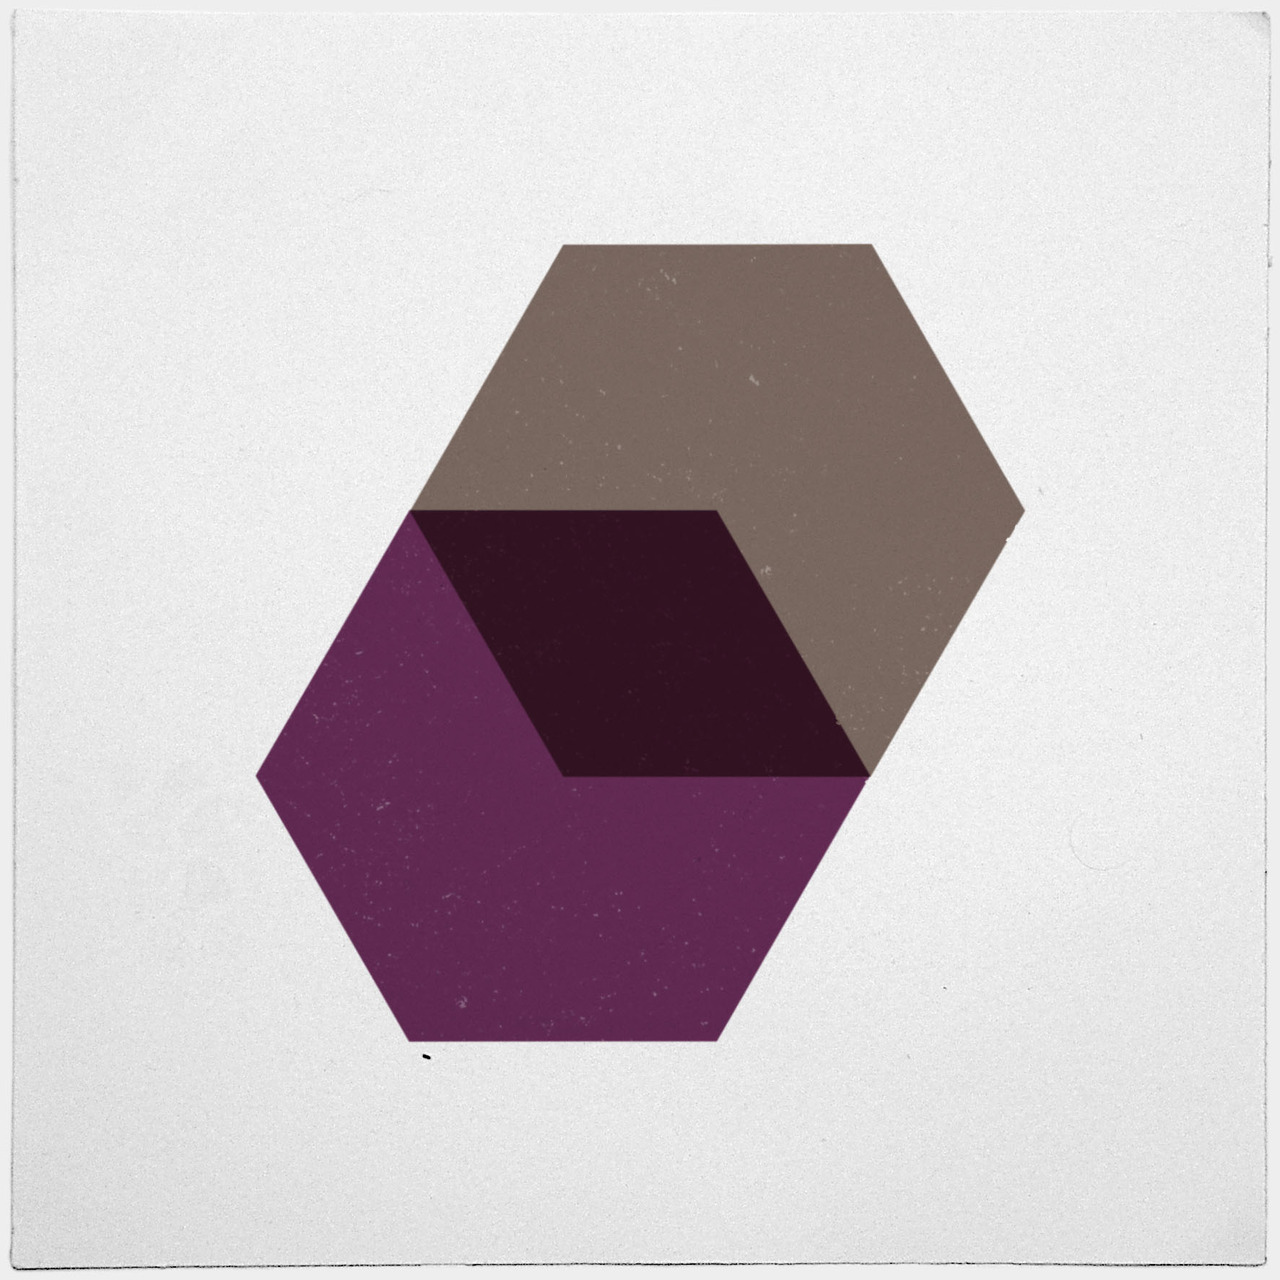 geometrydaily:  #203 Elevation – A new minimal geometric composition each day